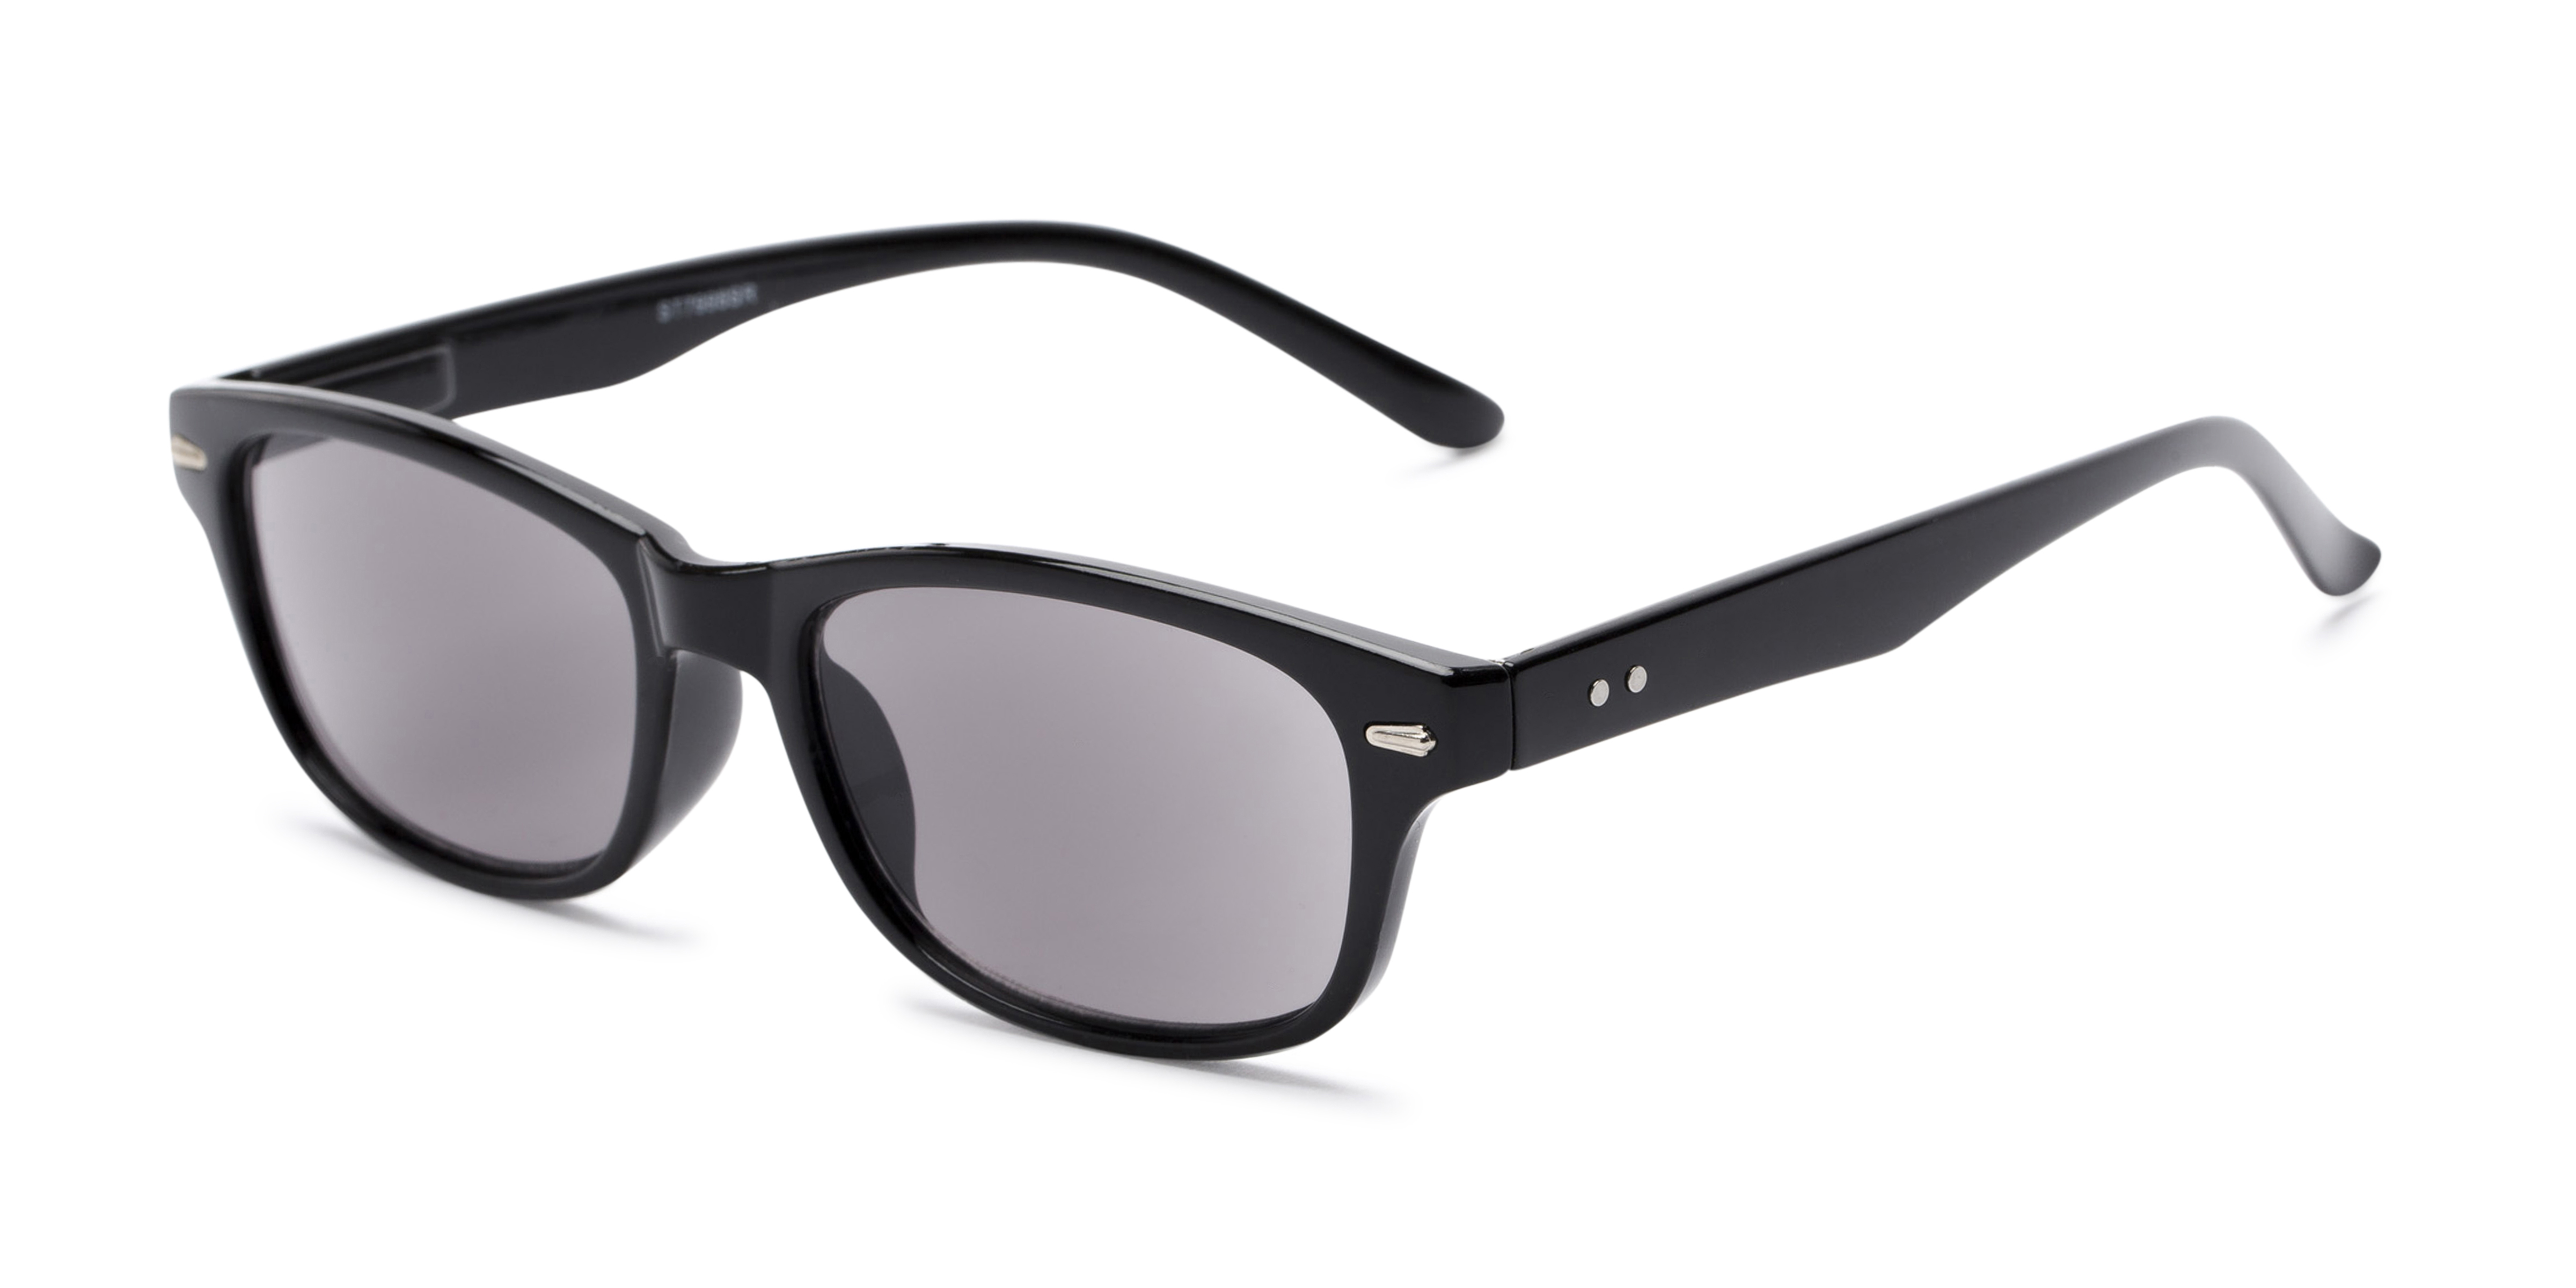 The Key West Reading Sunglasses +1.25 Black with Smoke